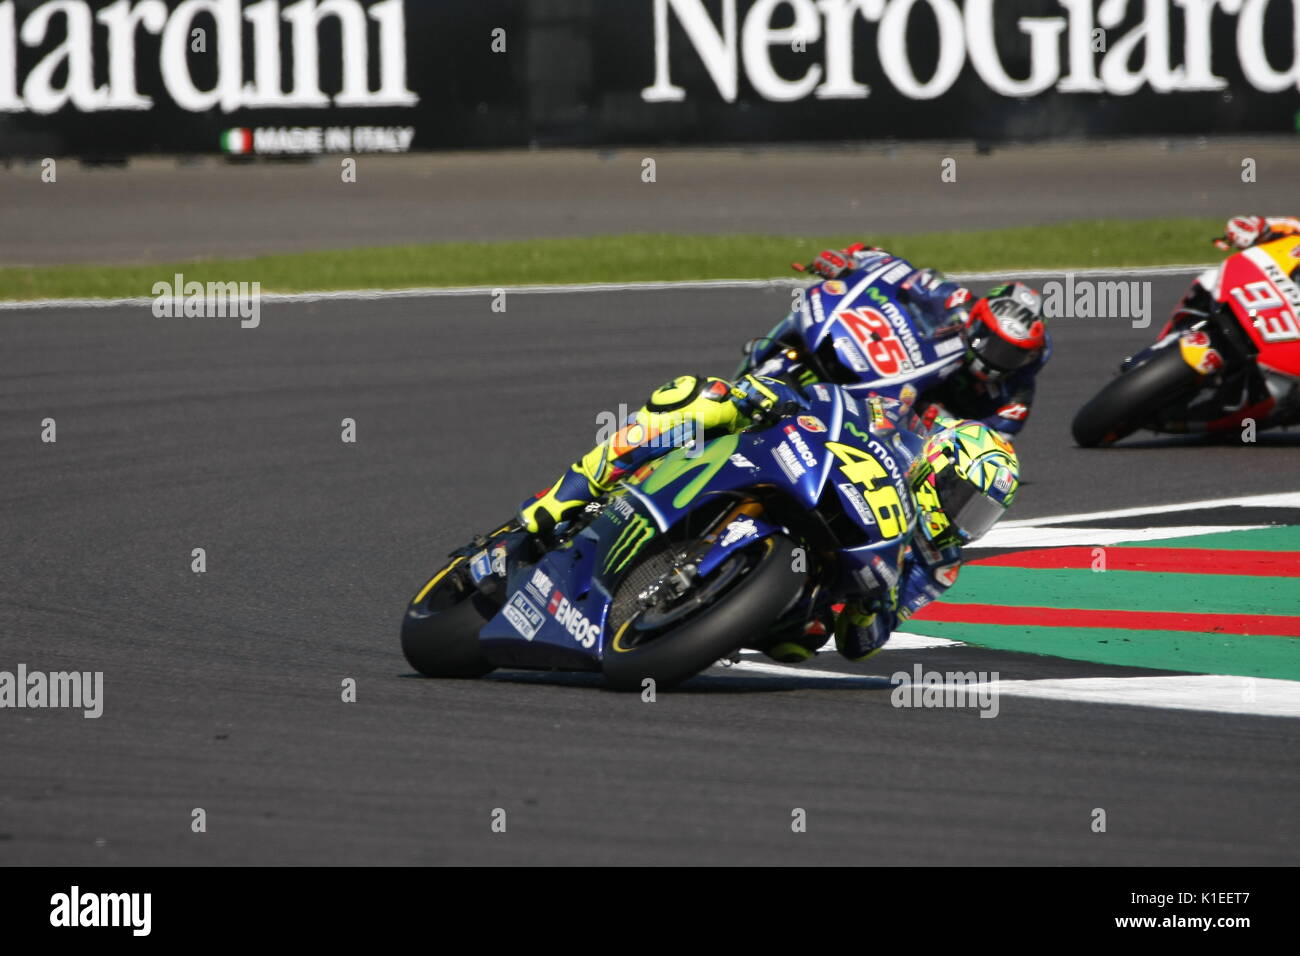 Silverstone, UK. 27th Aug, 2017.  Rossi (Yamaha) leads team-mate Vinales and Marquez (Honda) during the OCTO British MotoGP Credit: Motofoto/Alamy Live News - Stock Image